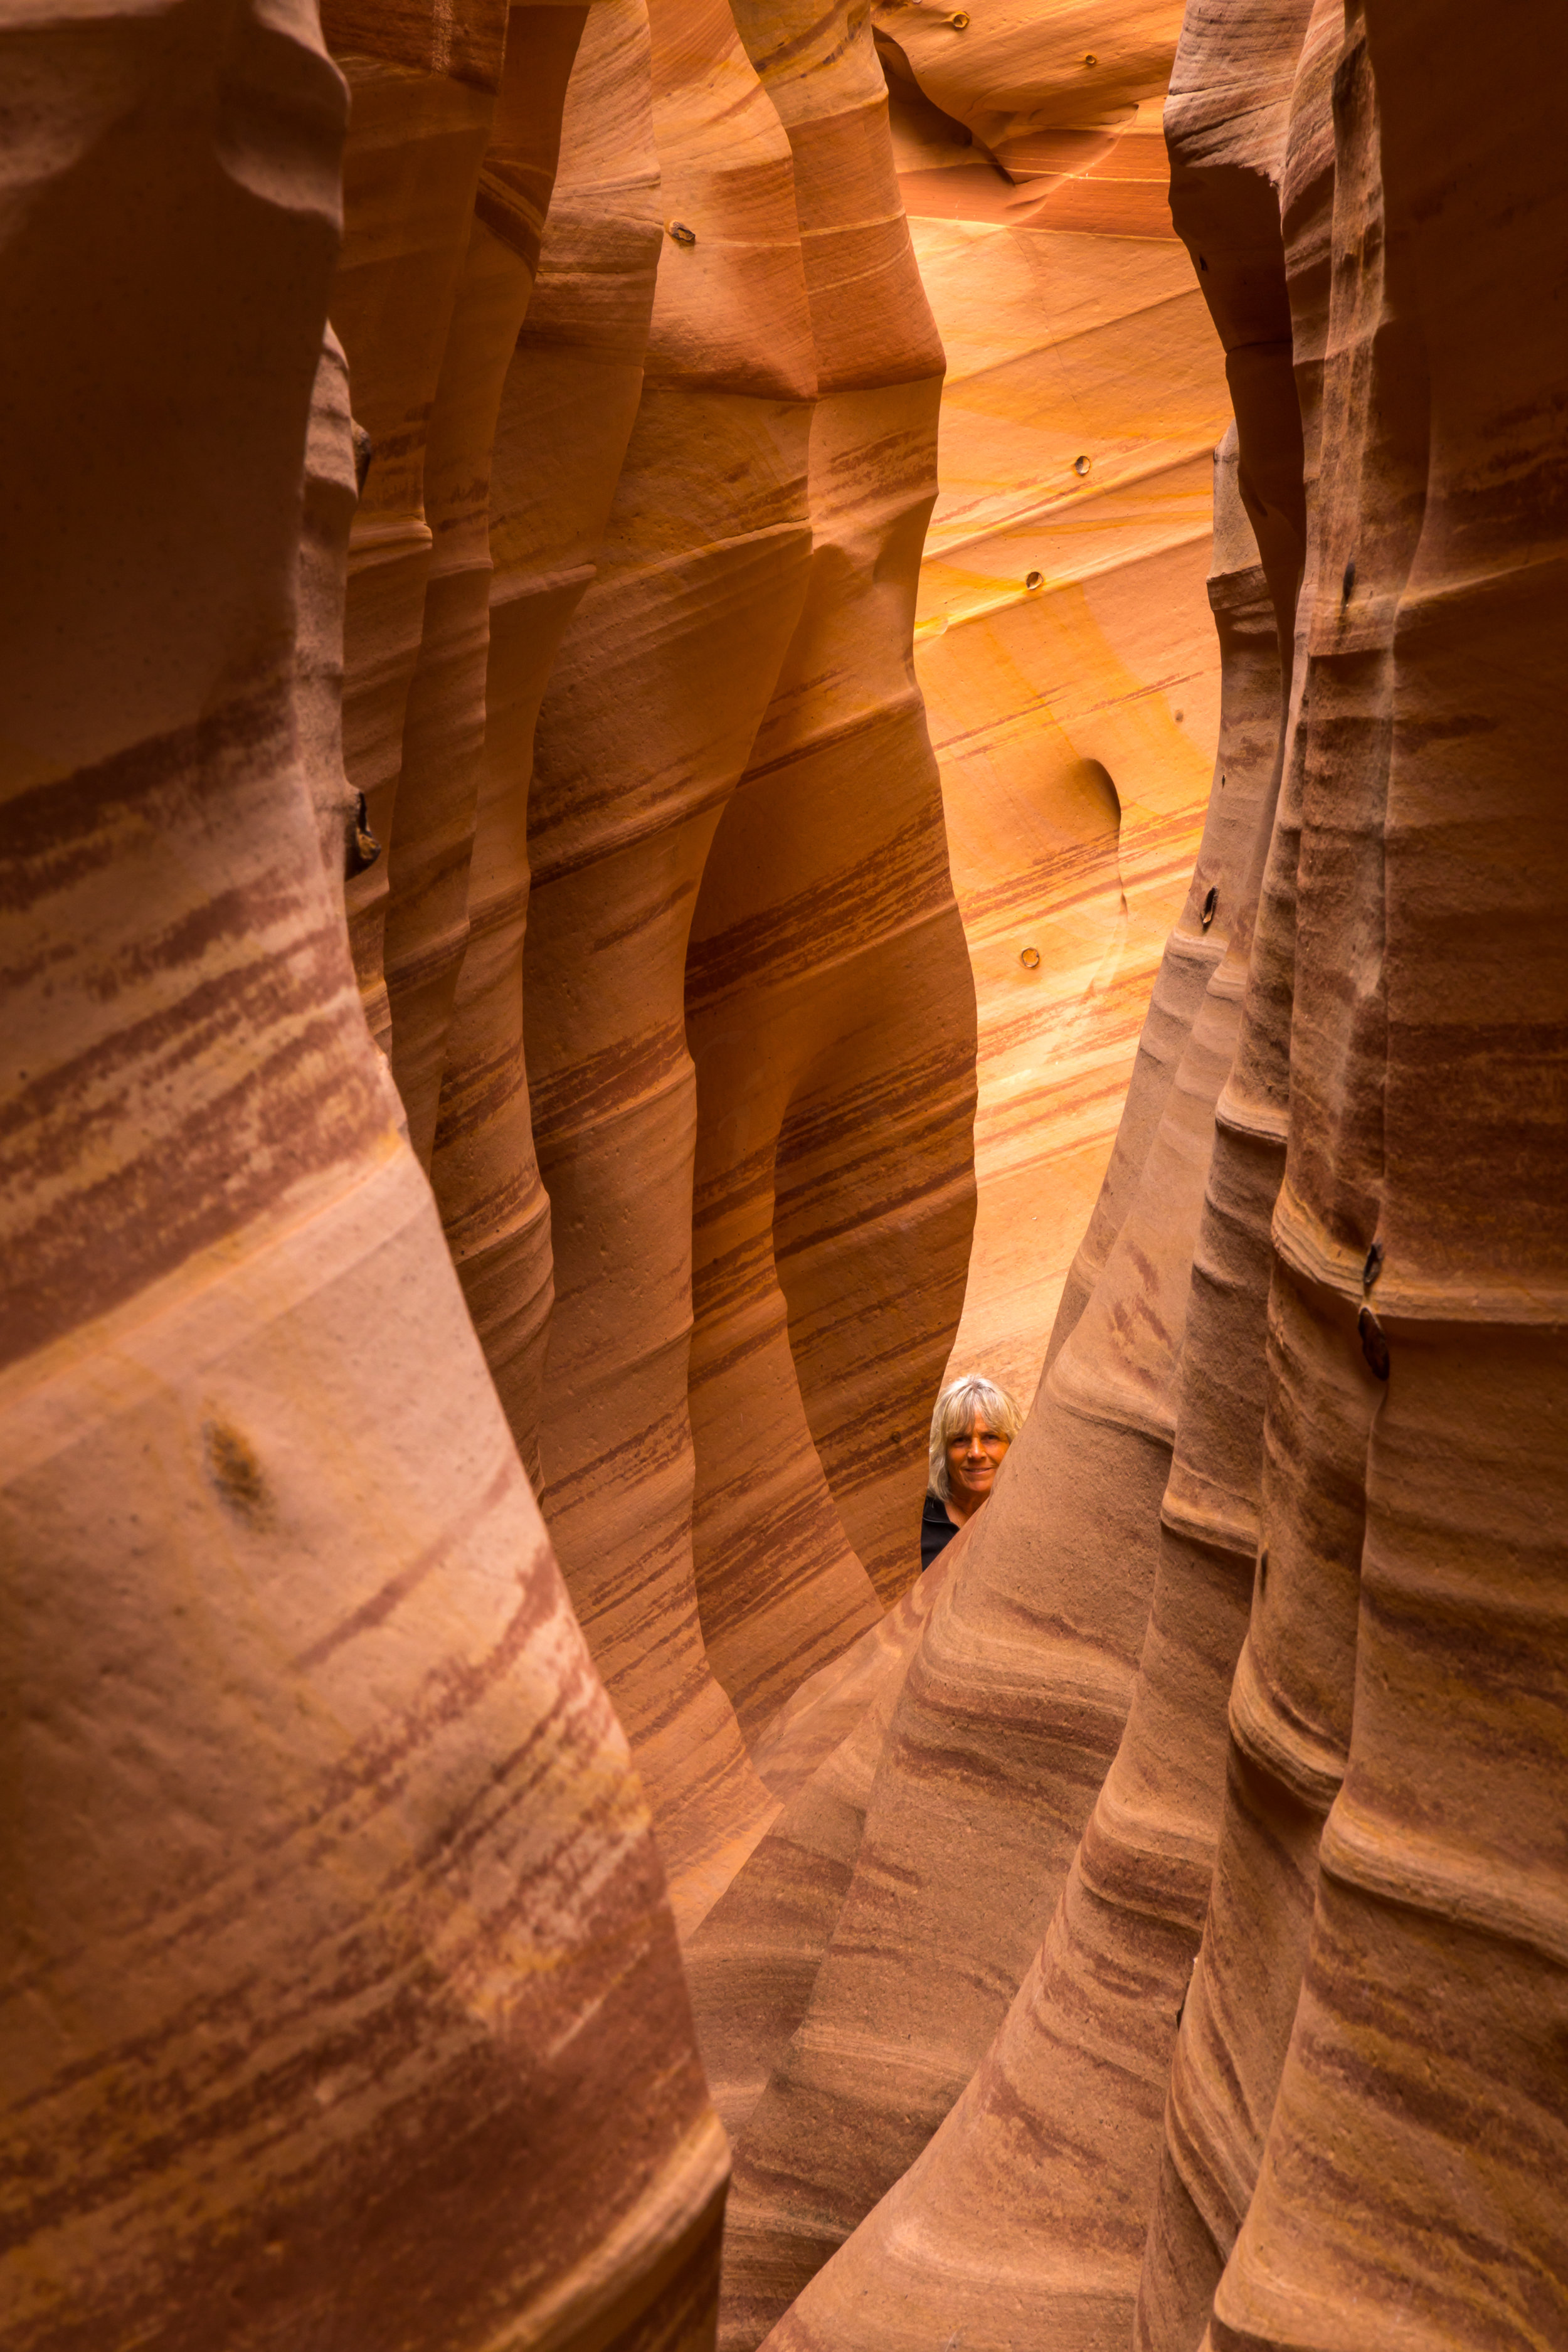 Zebra Slot Canyon, Image # 5368